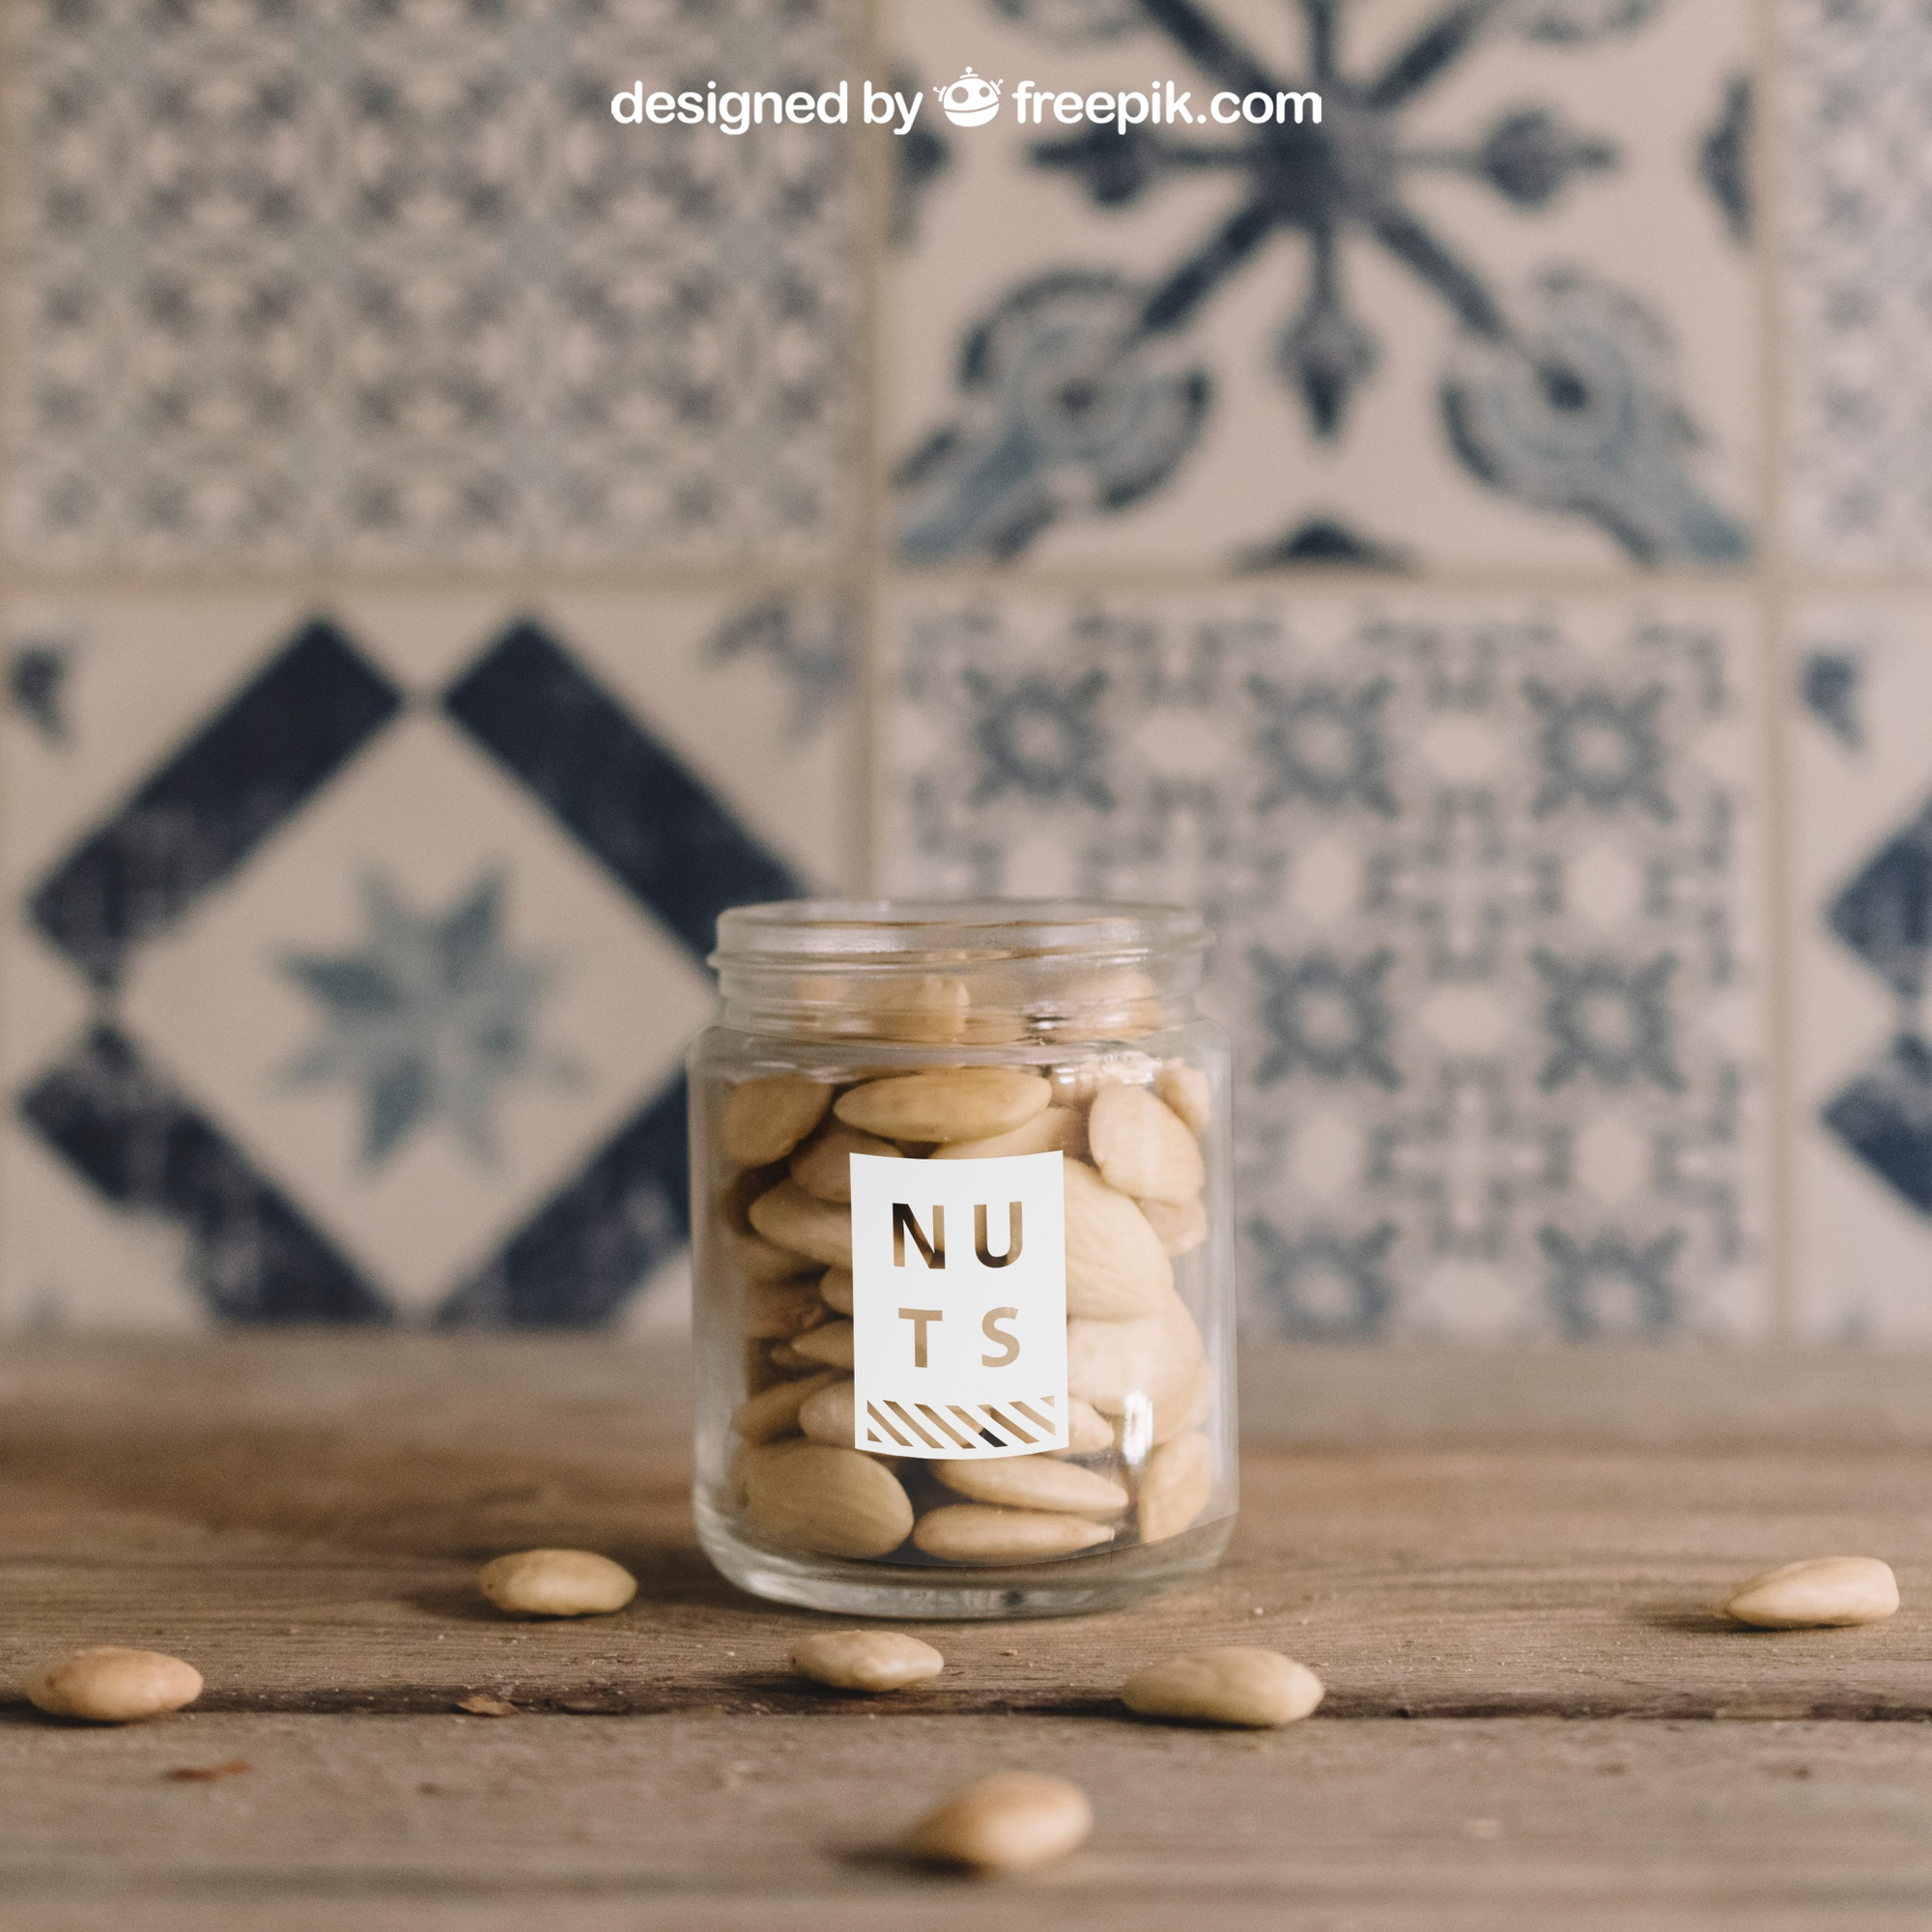 Mockup of nuts in glass